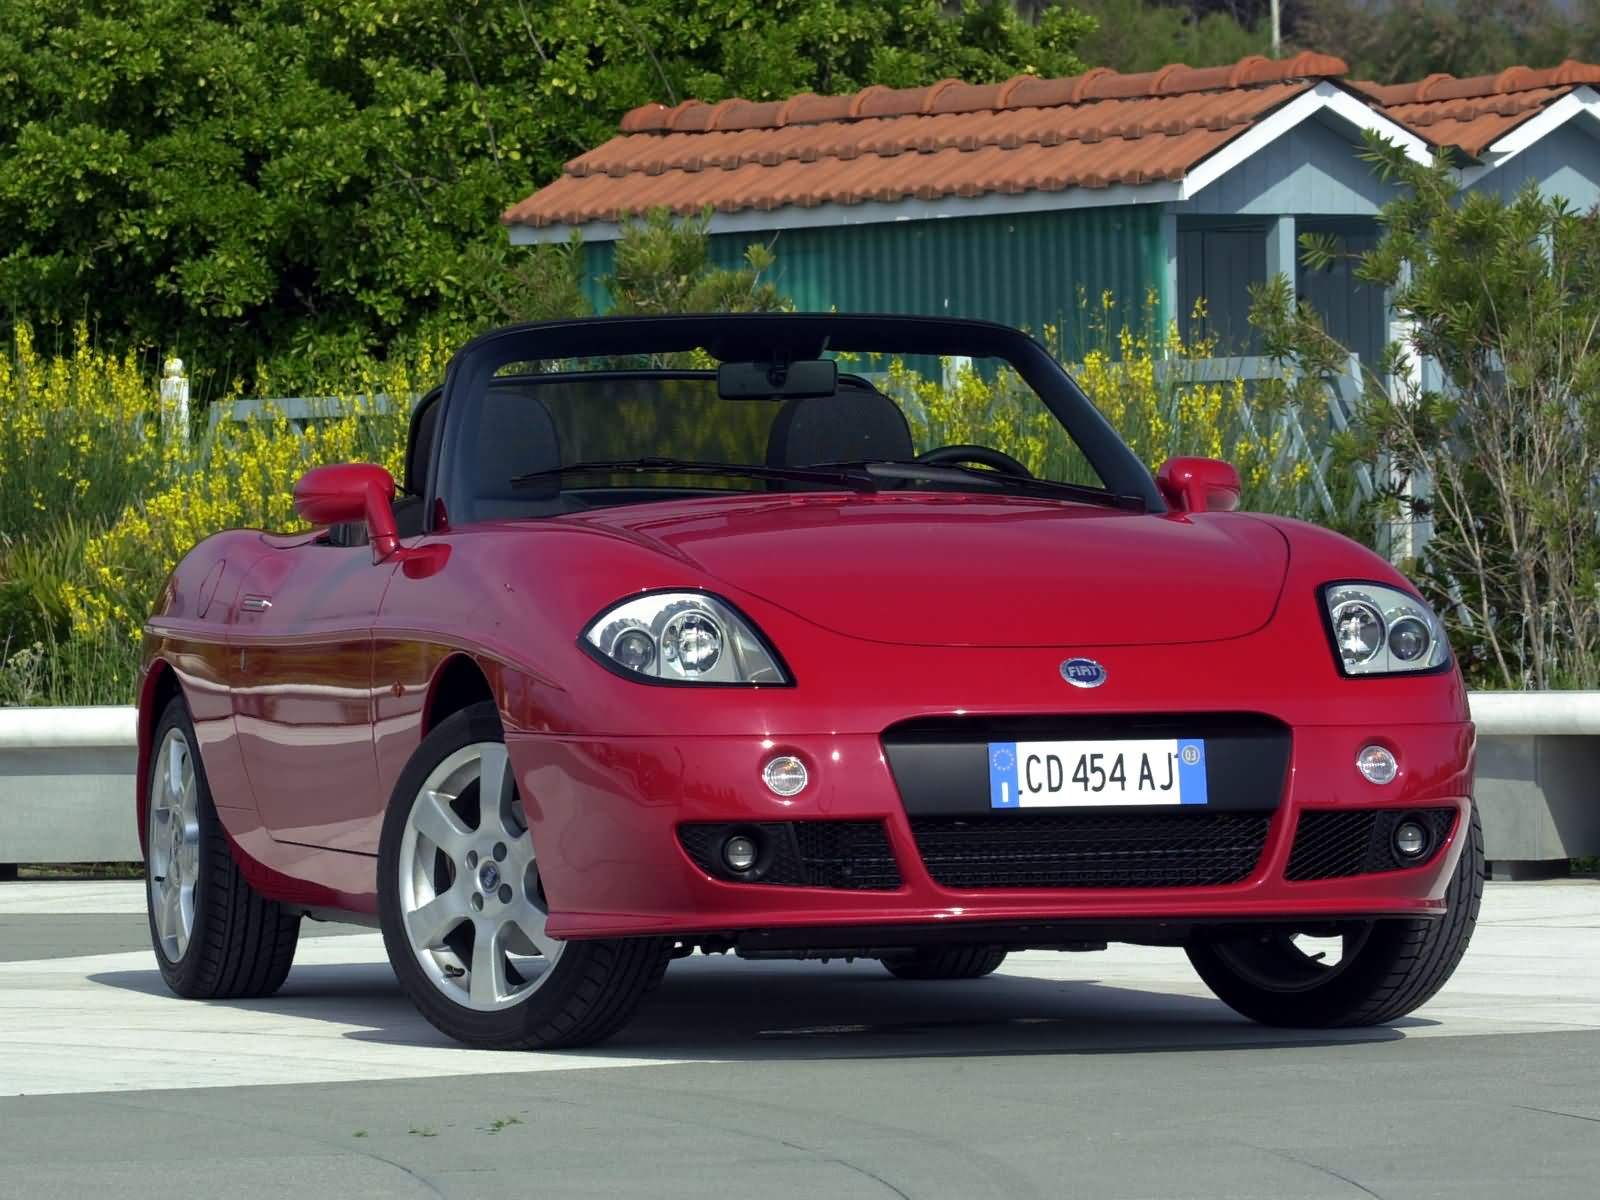 Fiat-Barchetta_mp21_pic_5276